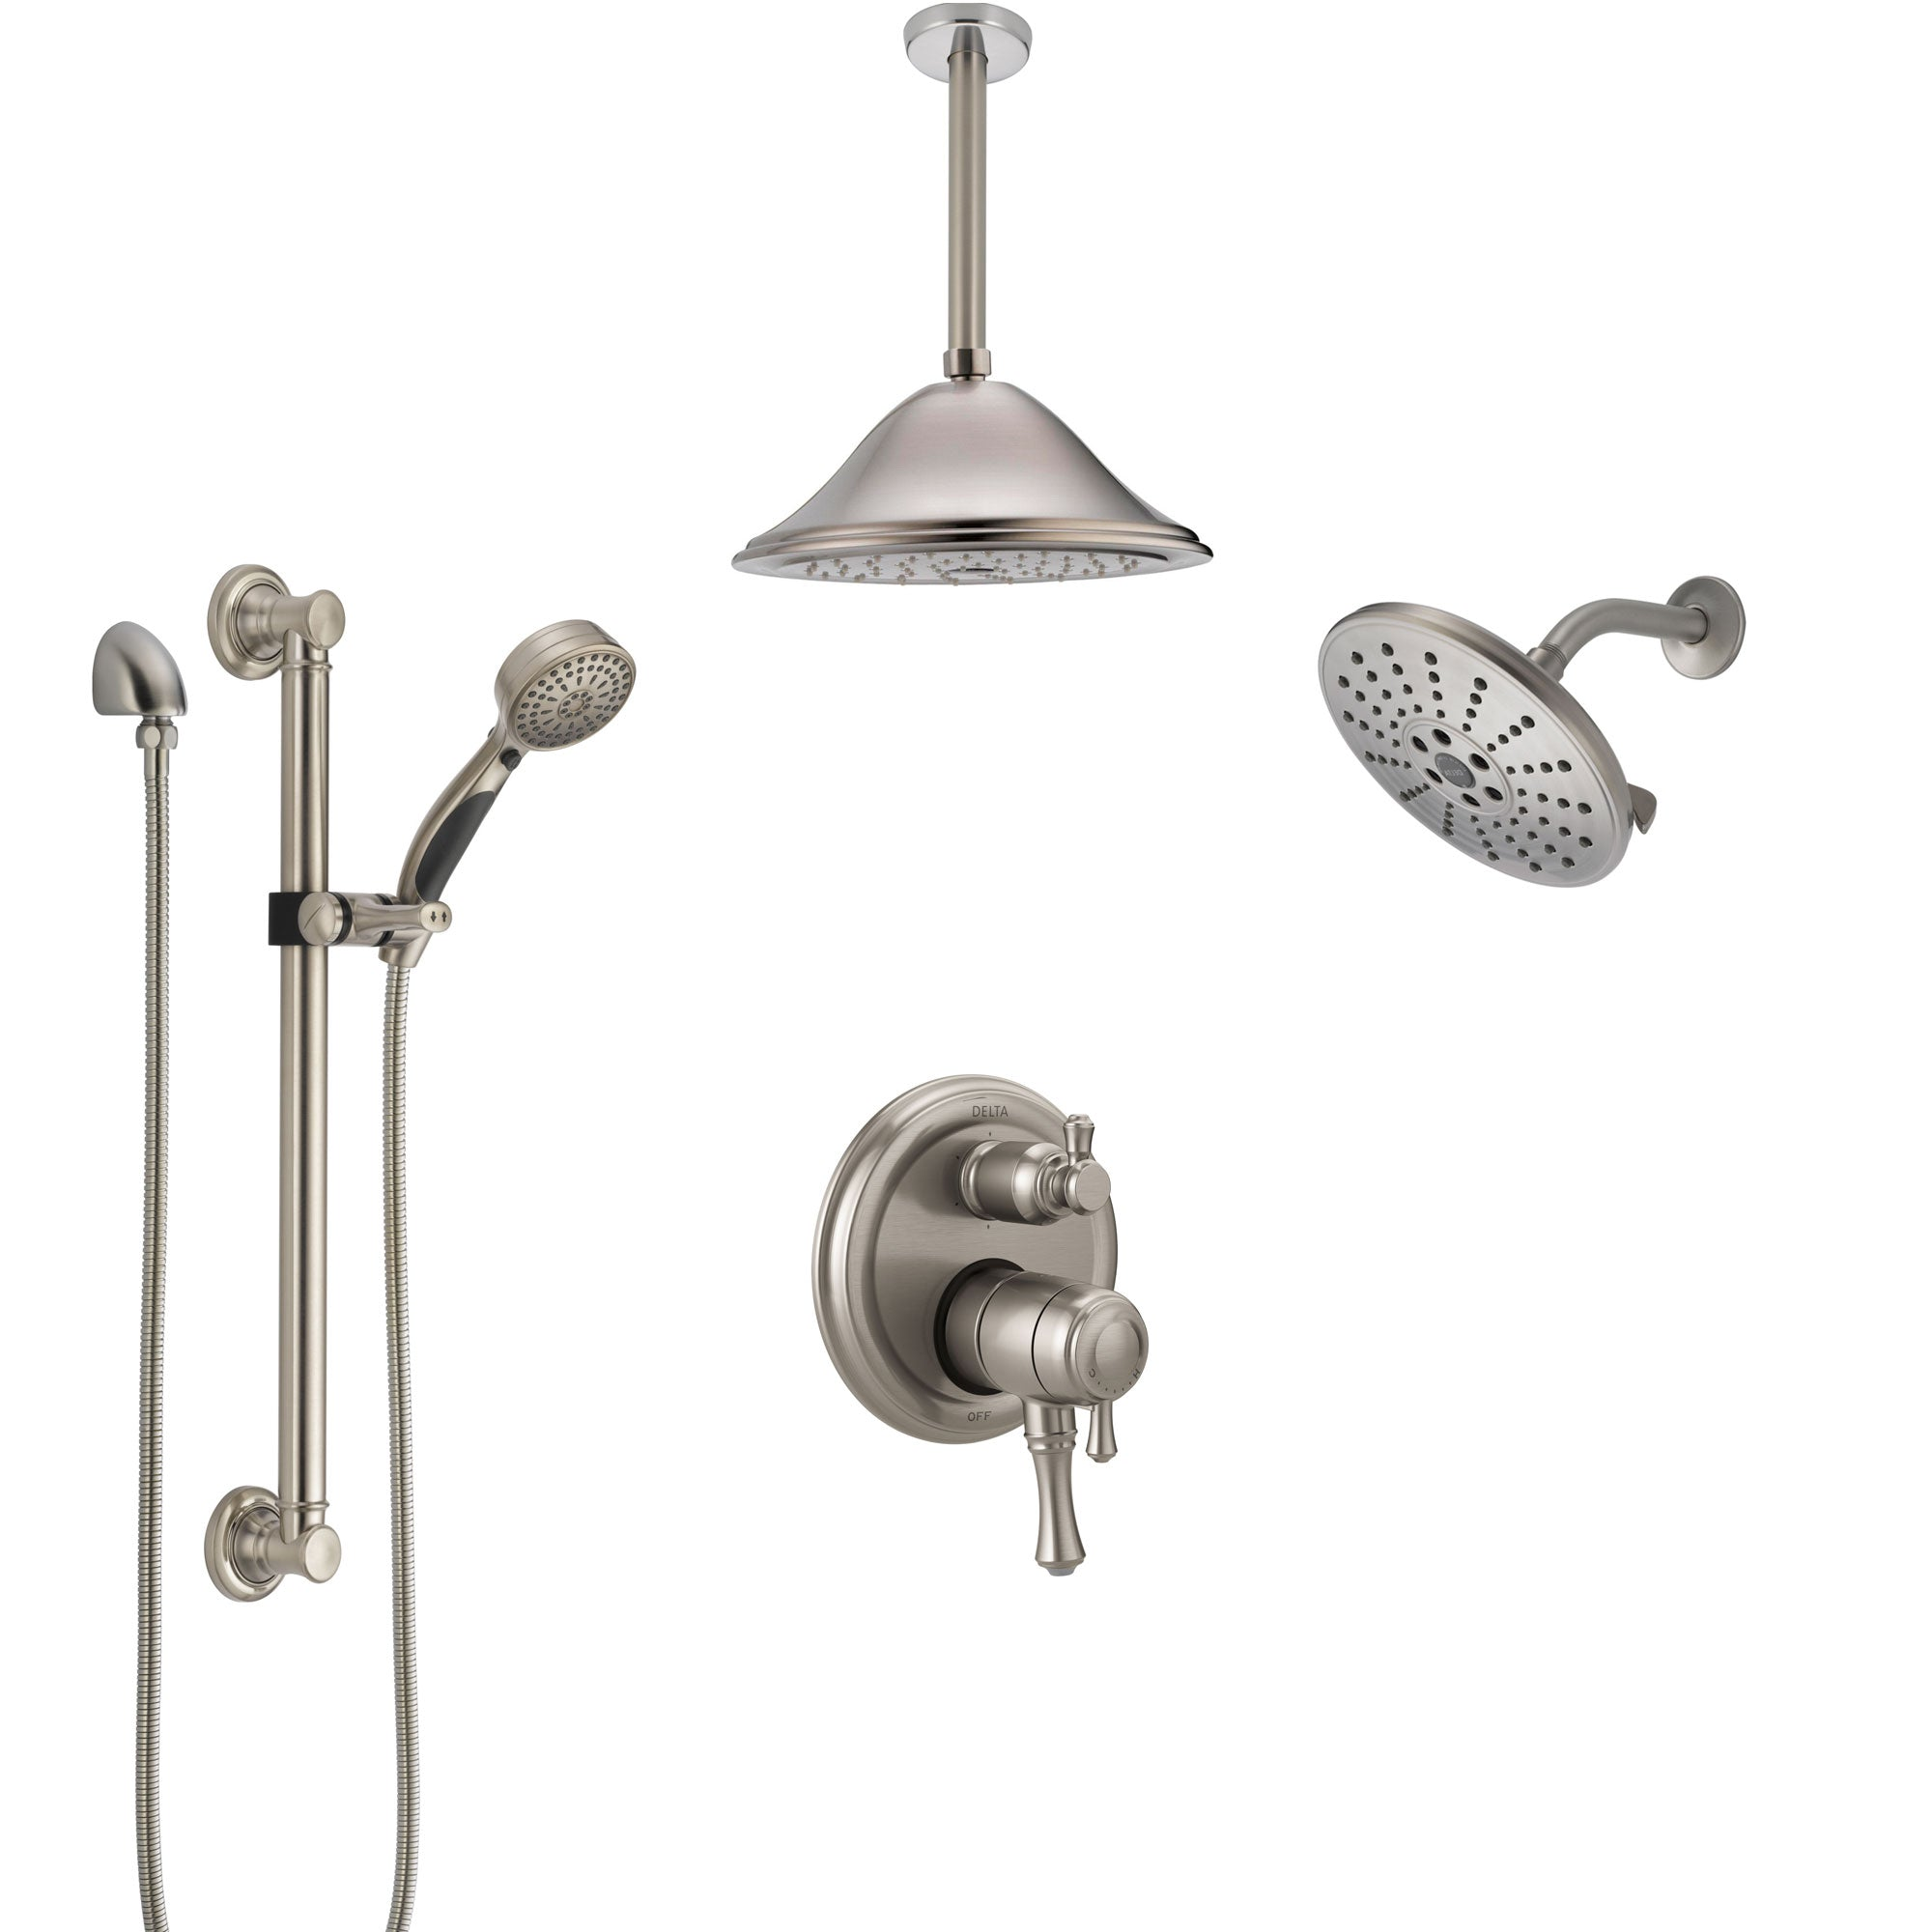 Delta Cassidy Dual Control Handle Stainless Steel Finish Shower System Showerhead Ceiling Showerhead Grab Bar Hand Spray Ss27997ss8